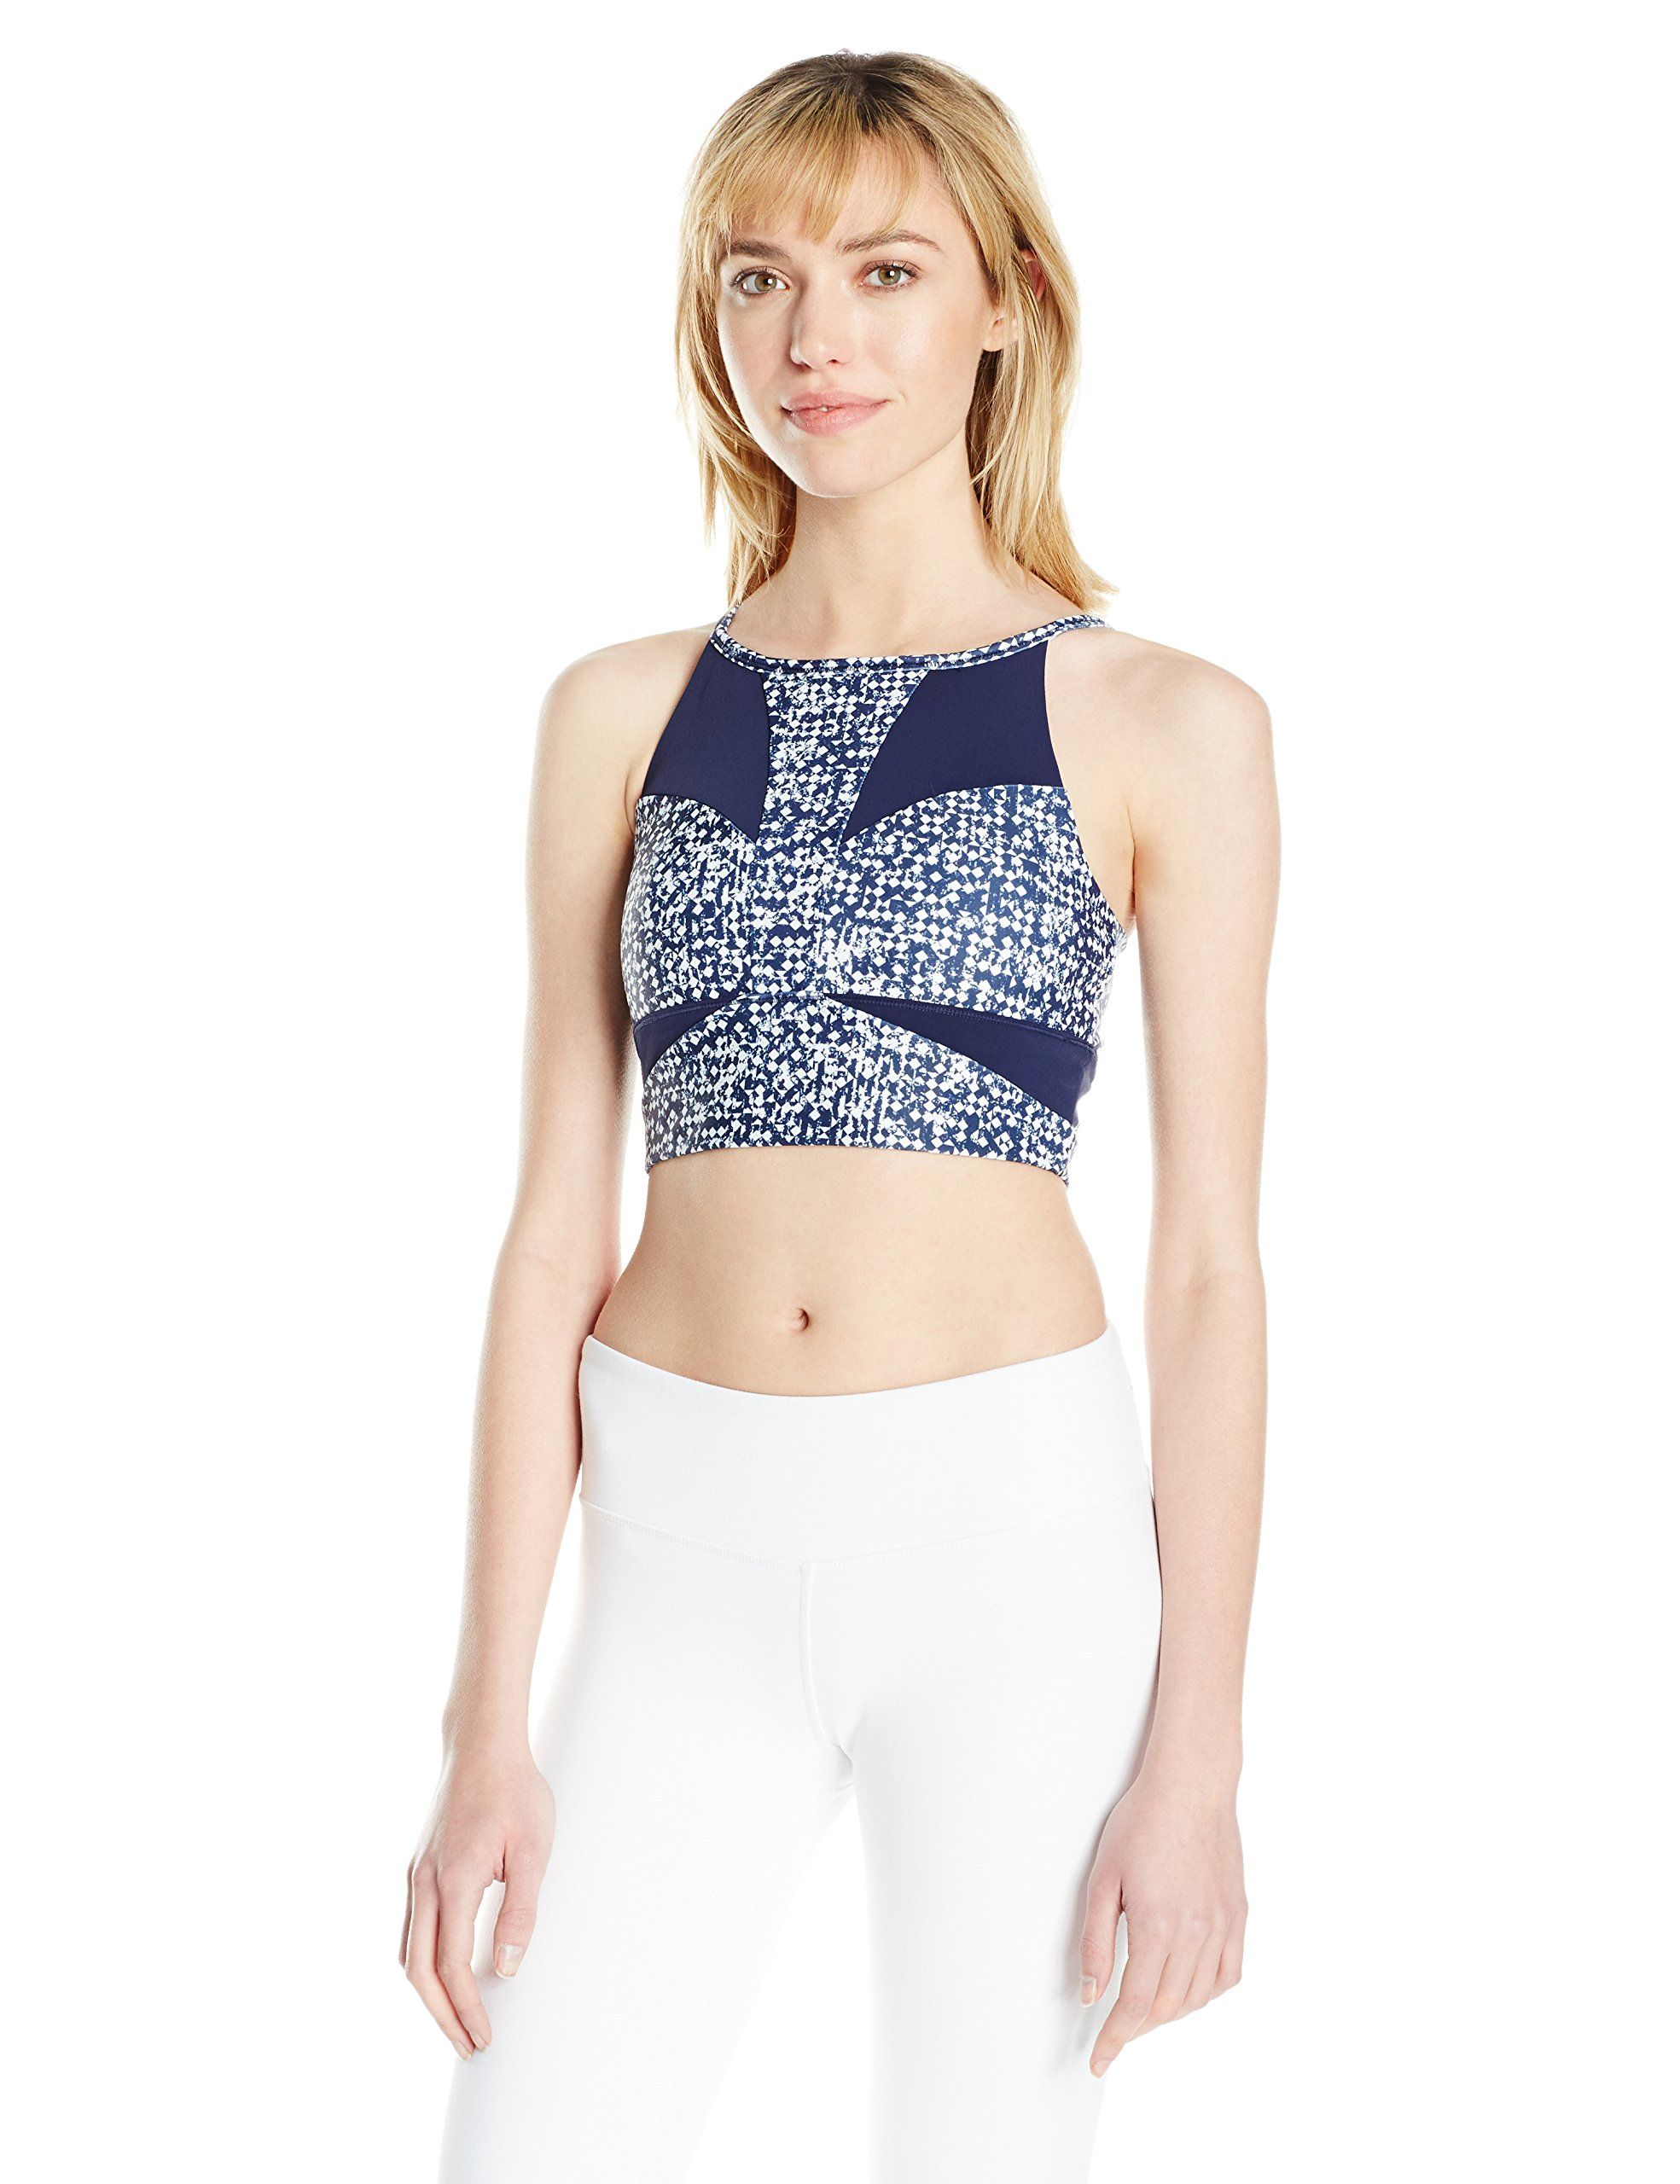 02d1902dc4fdf PUMA Womens Culture Surf Crop Top Bra No Color Peacoat White Box Print XL      Click picture for even more information. (This is an affiliate link).